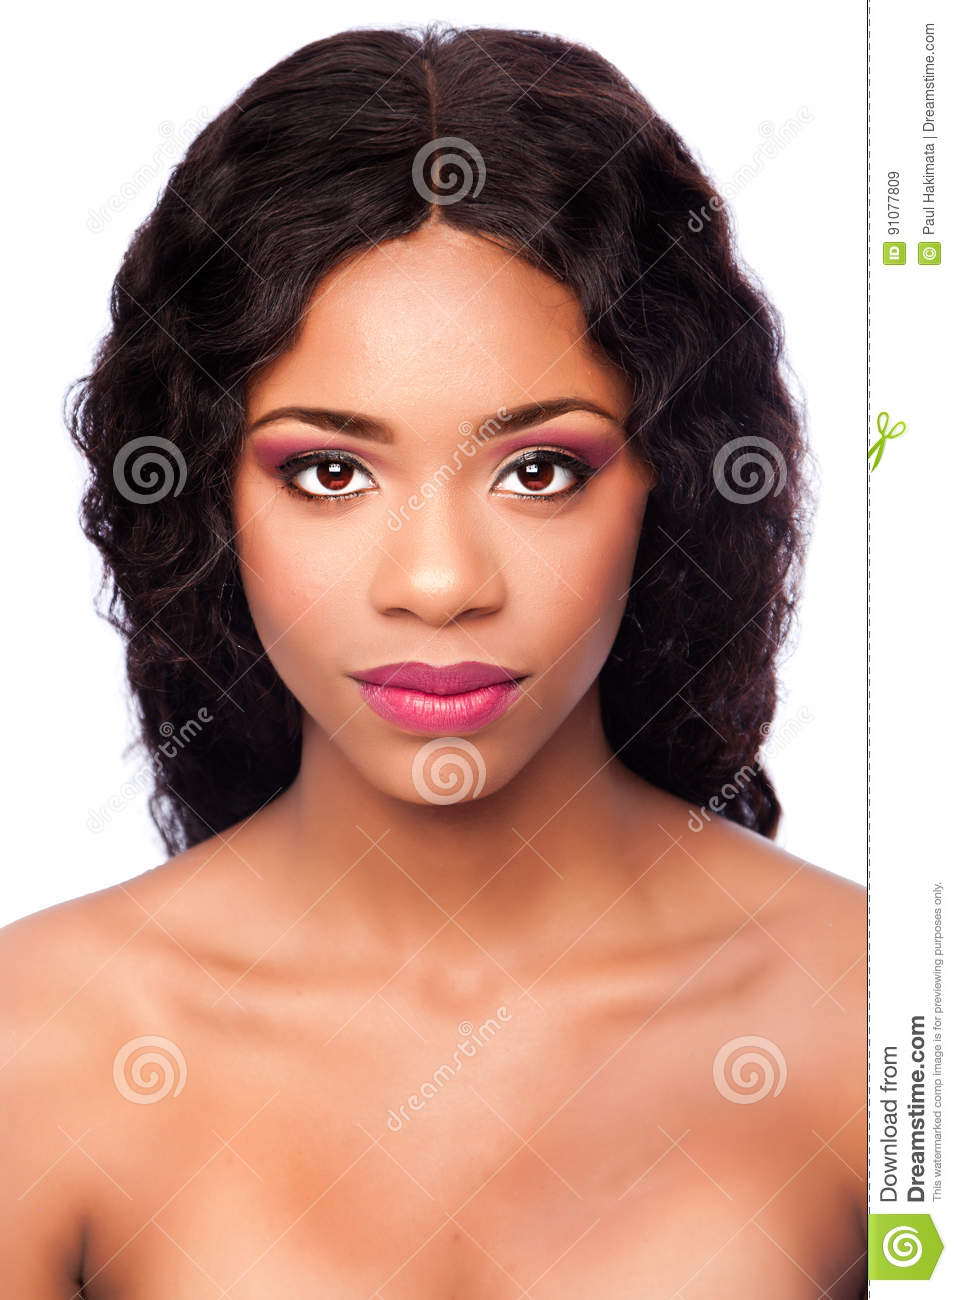 African Beauty Face With Makeup And Curly Hair Stock Image Image